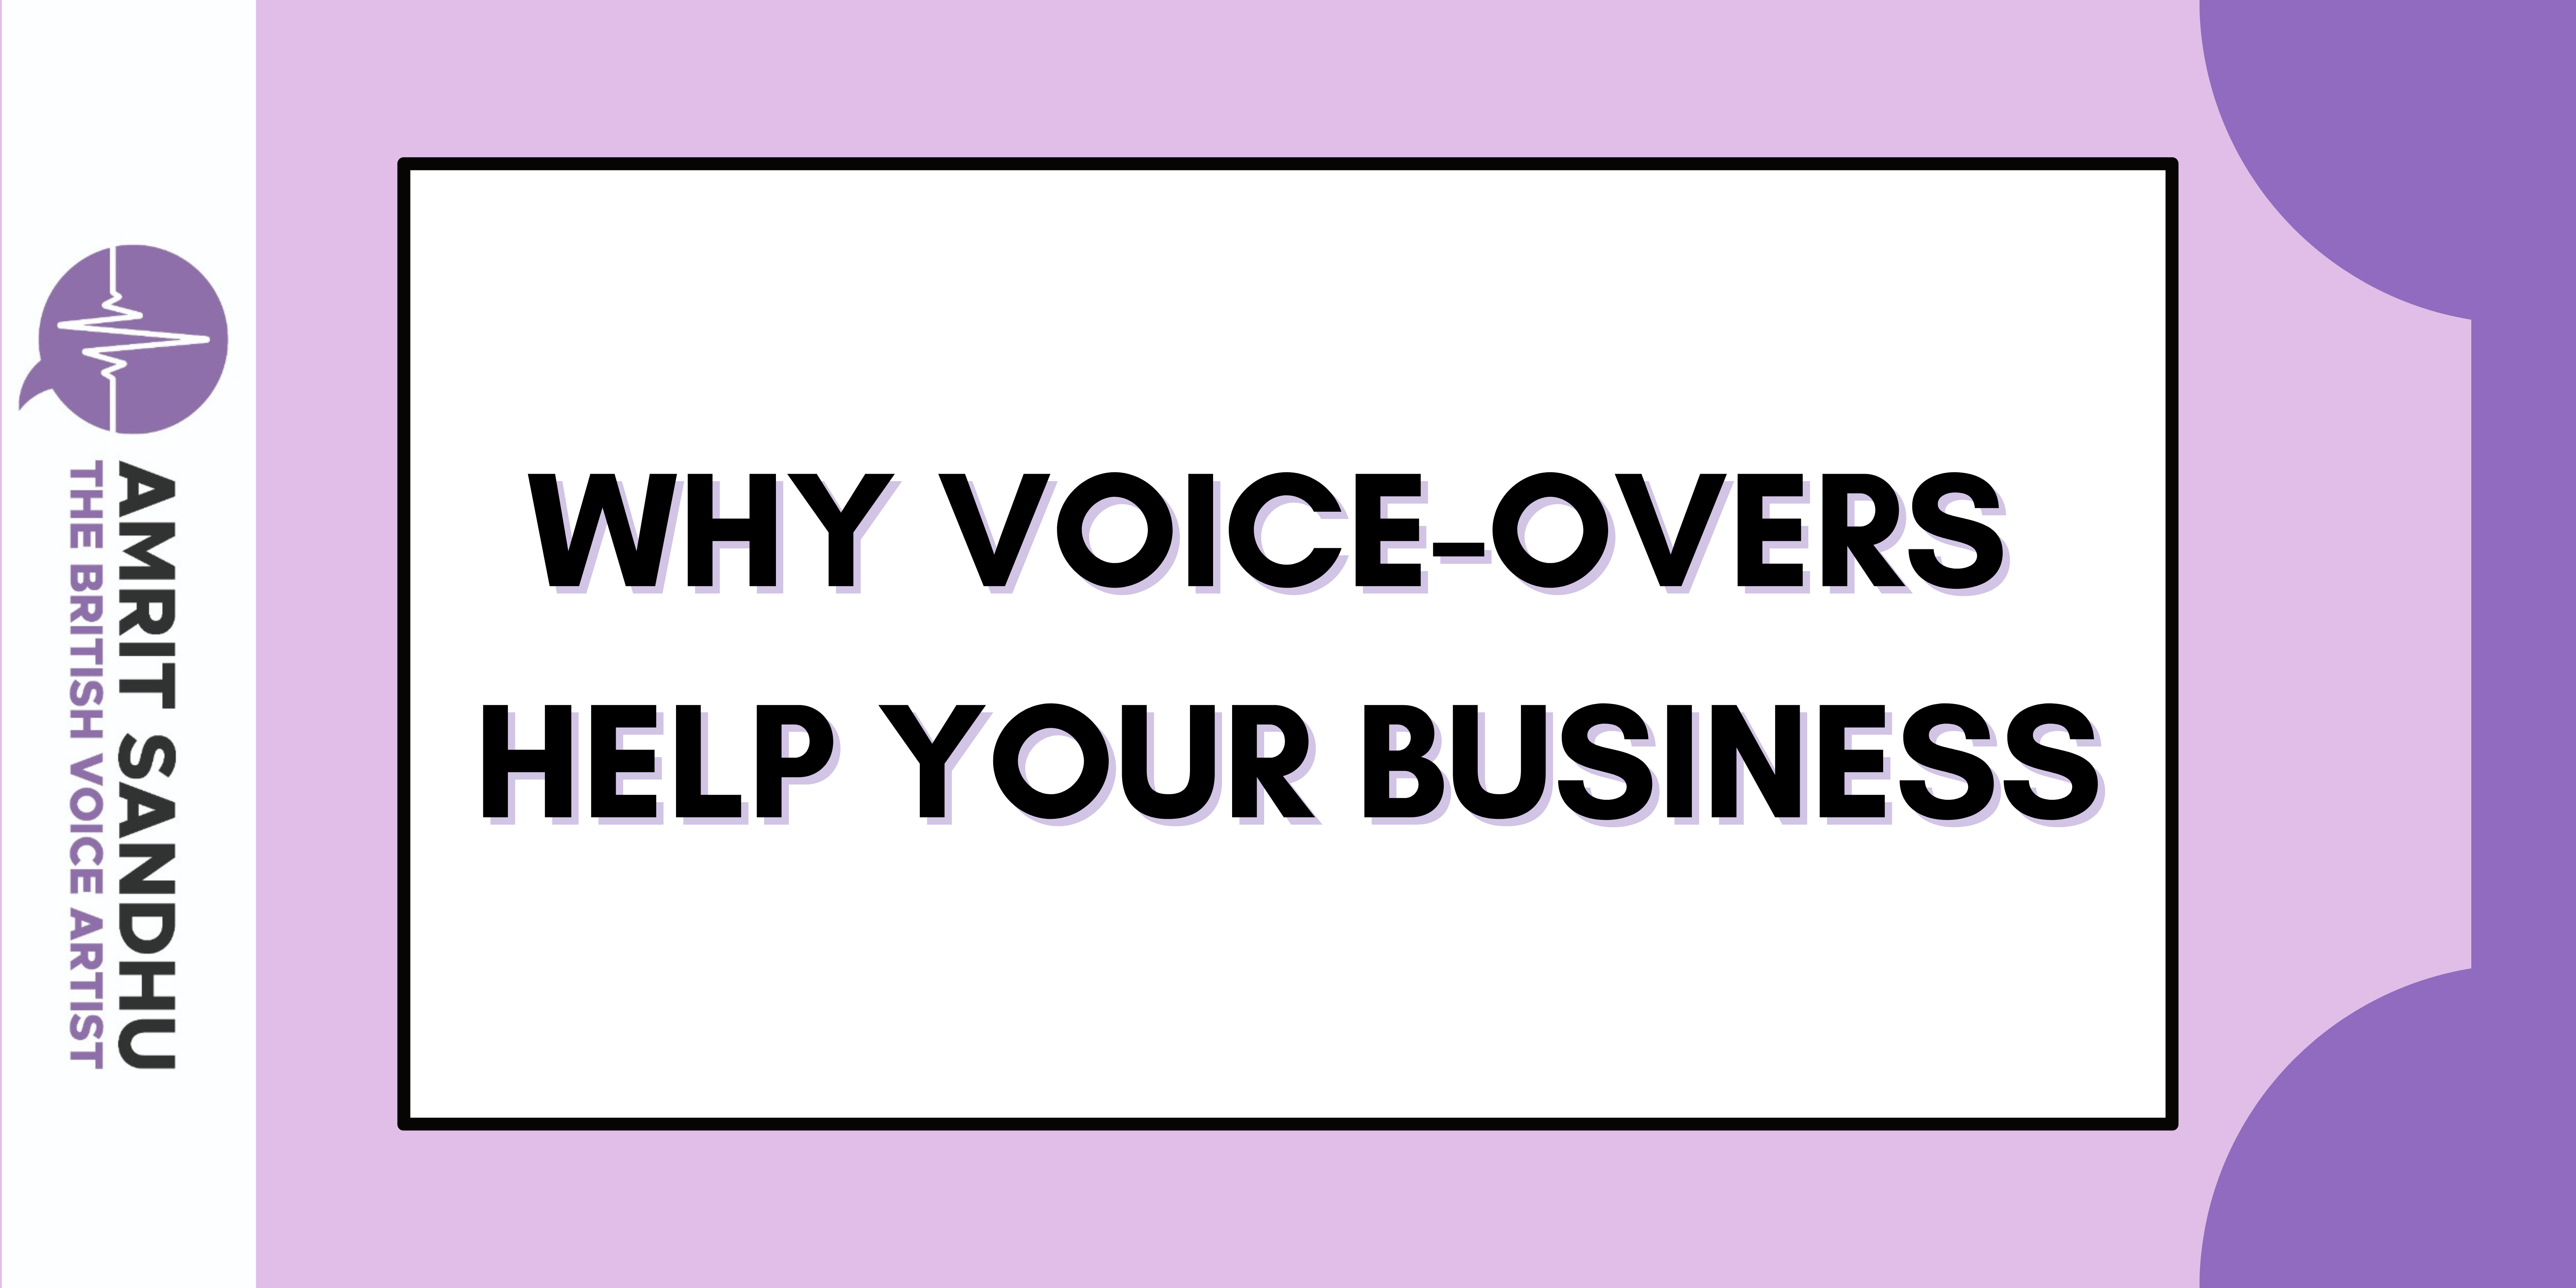 Why You Should Use Voice-Overs to Promote Your Business